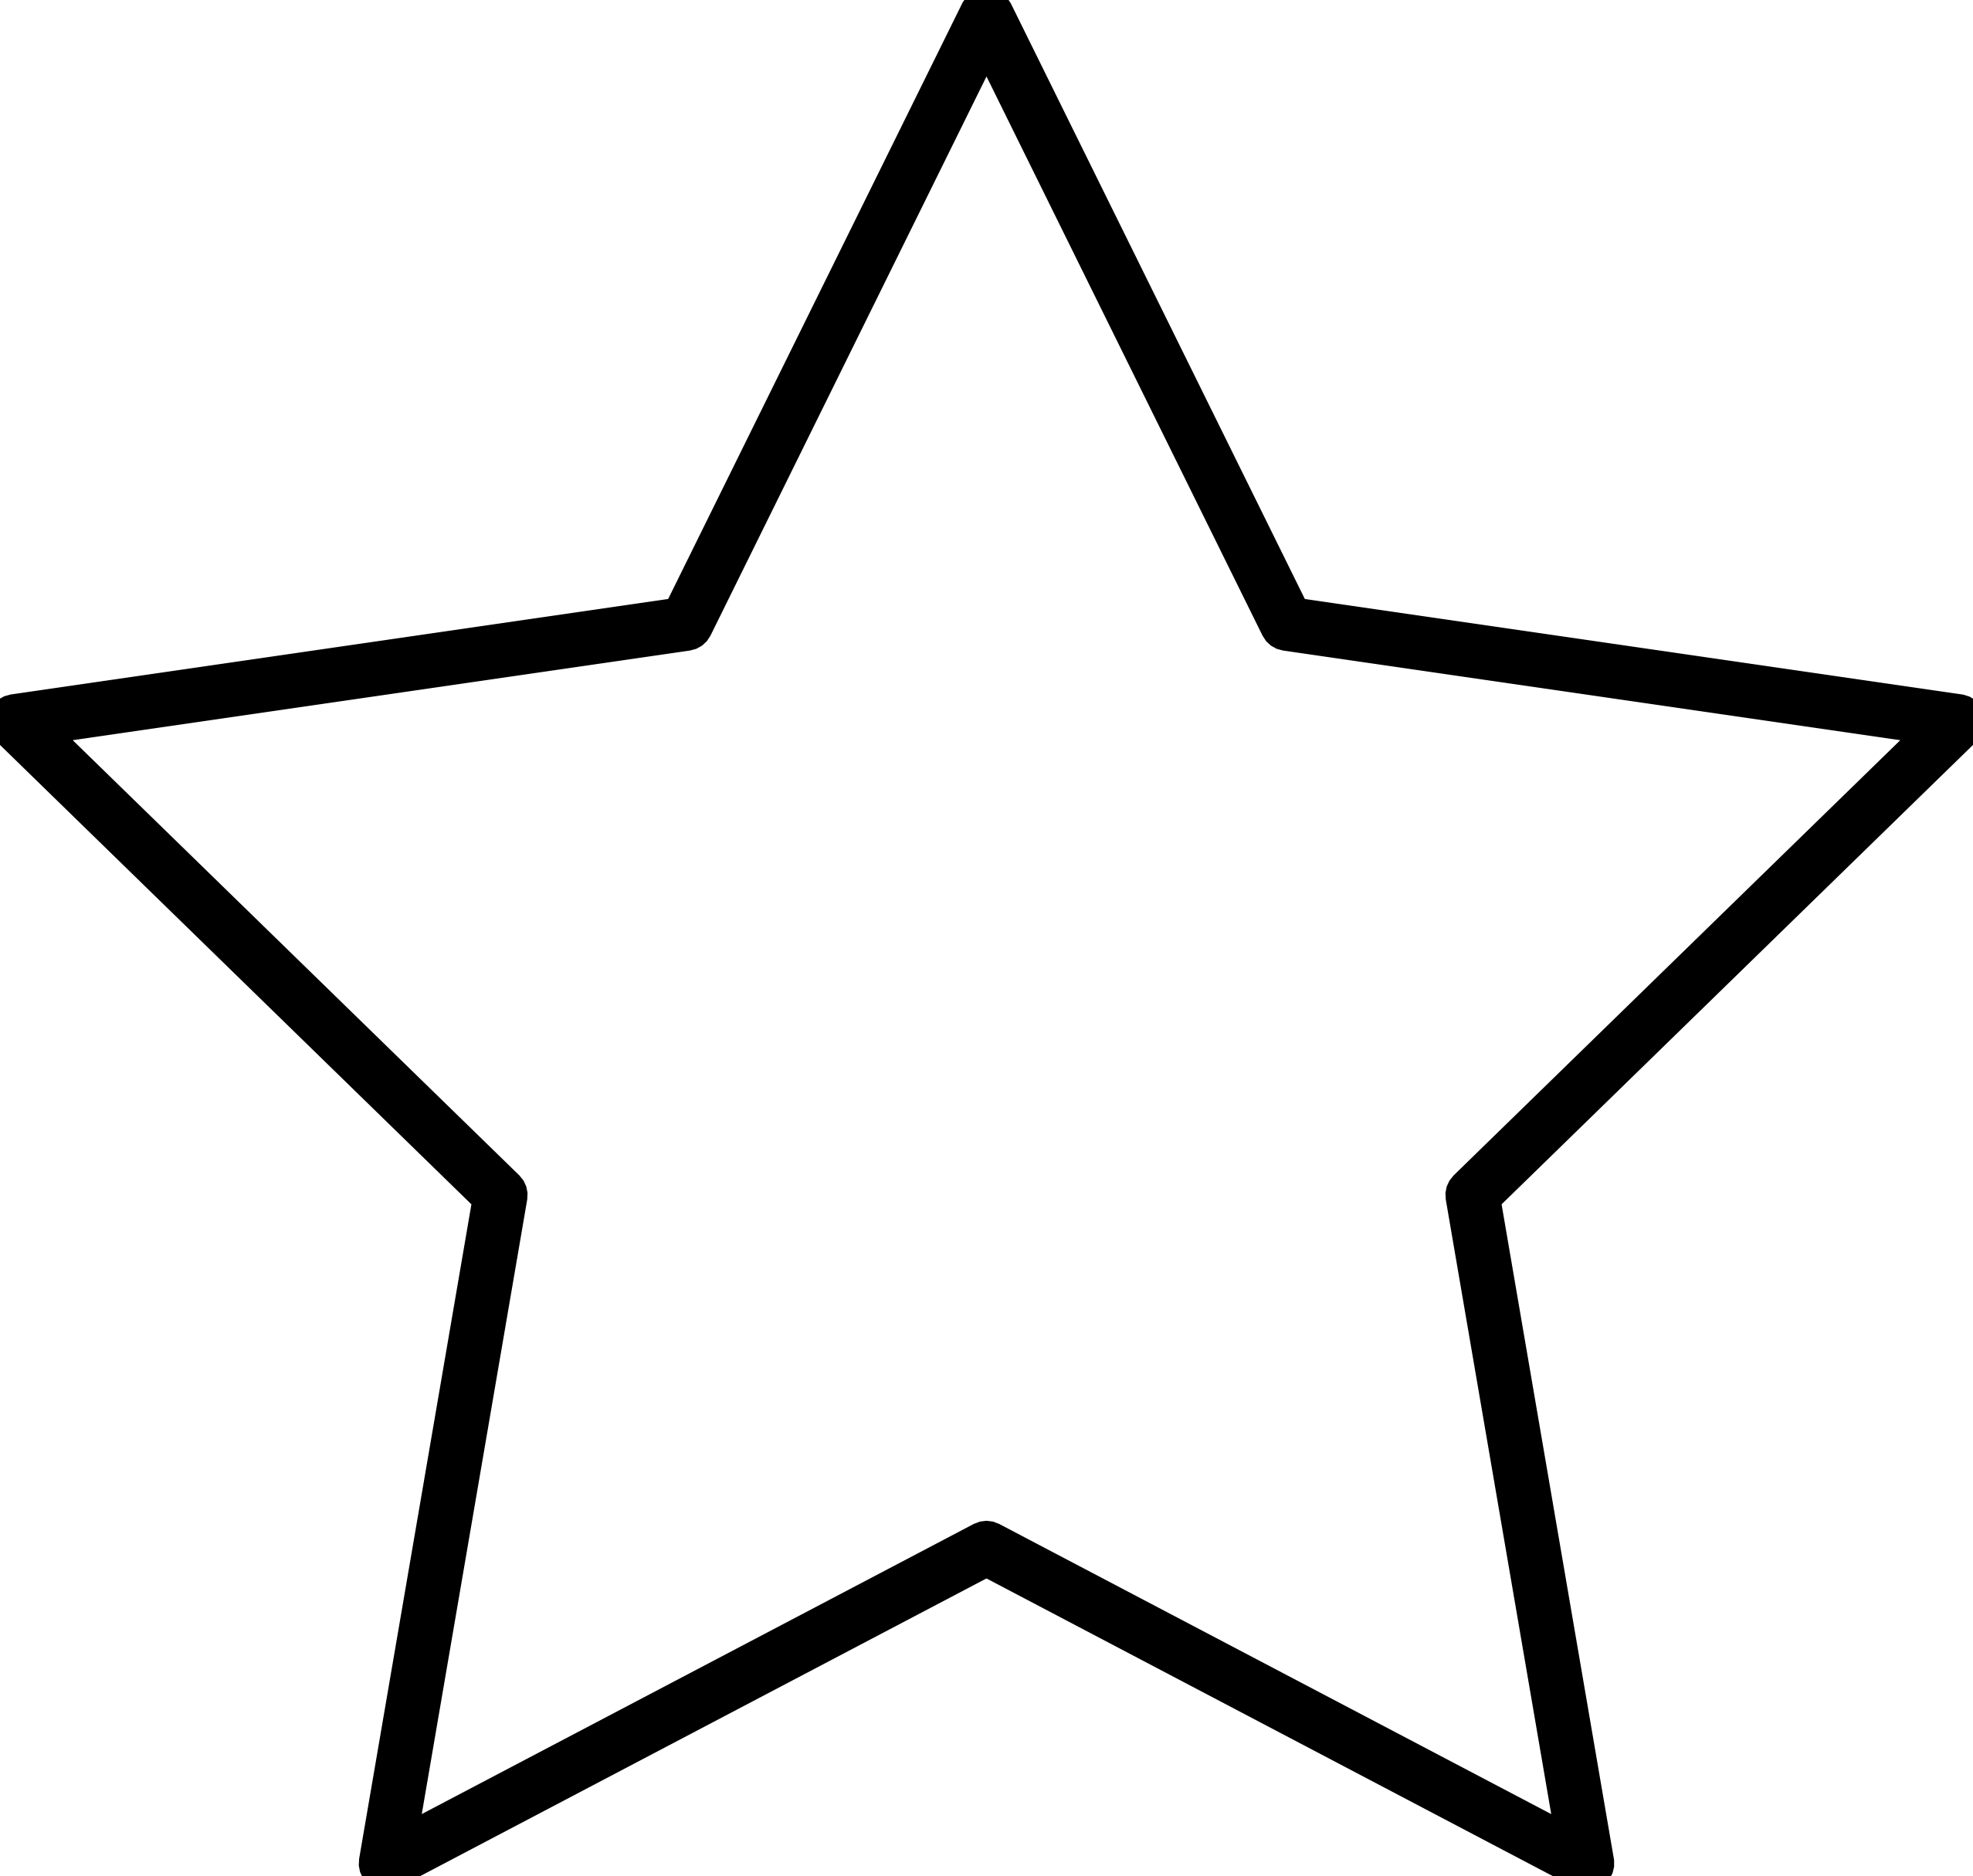 Black and white star clipart png clipart download Shooting Stars Clipart Black And White | Clipart Panda - Free ... clipart download